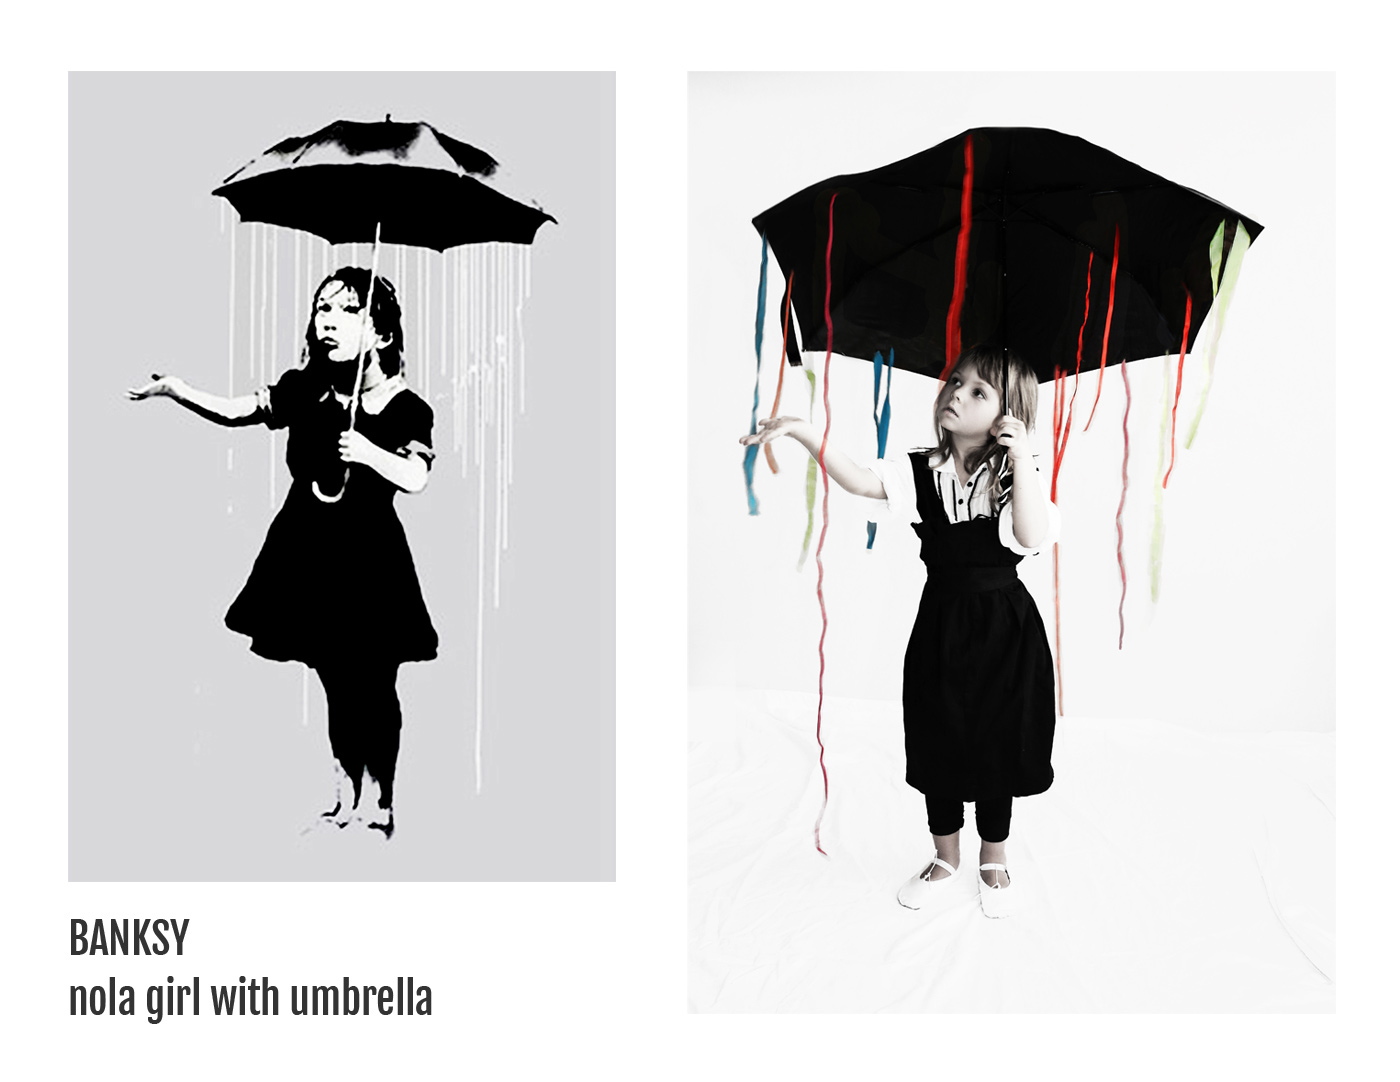 Banksy - Nola girl with umbrella